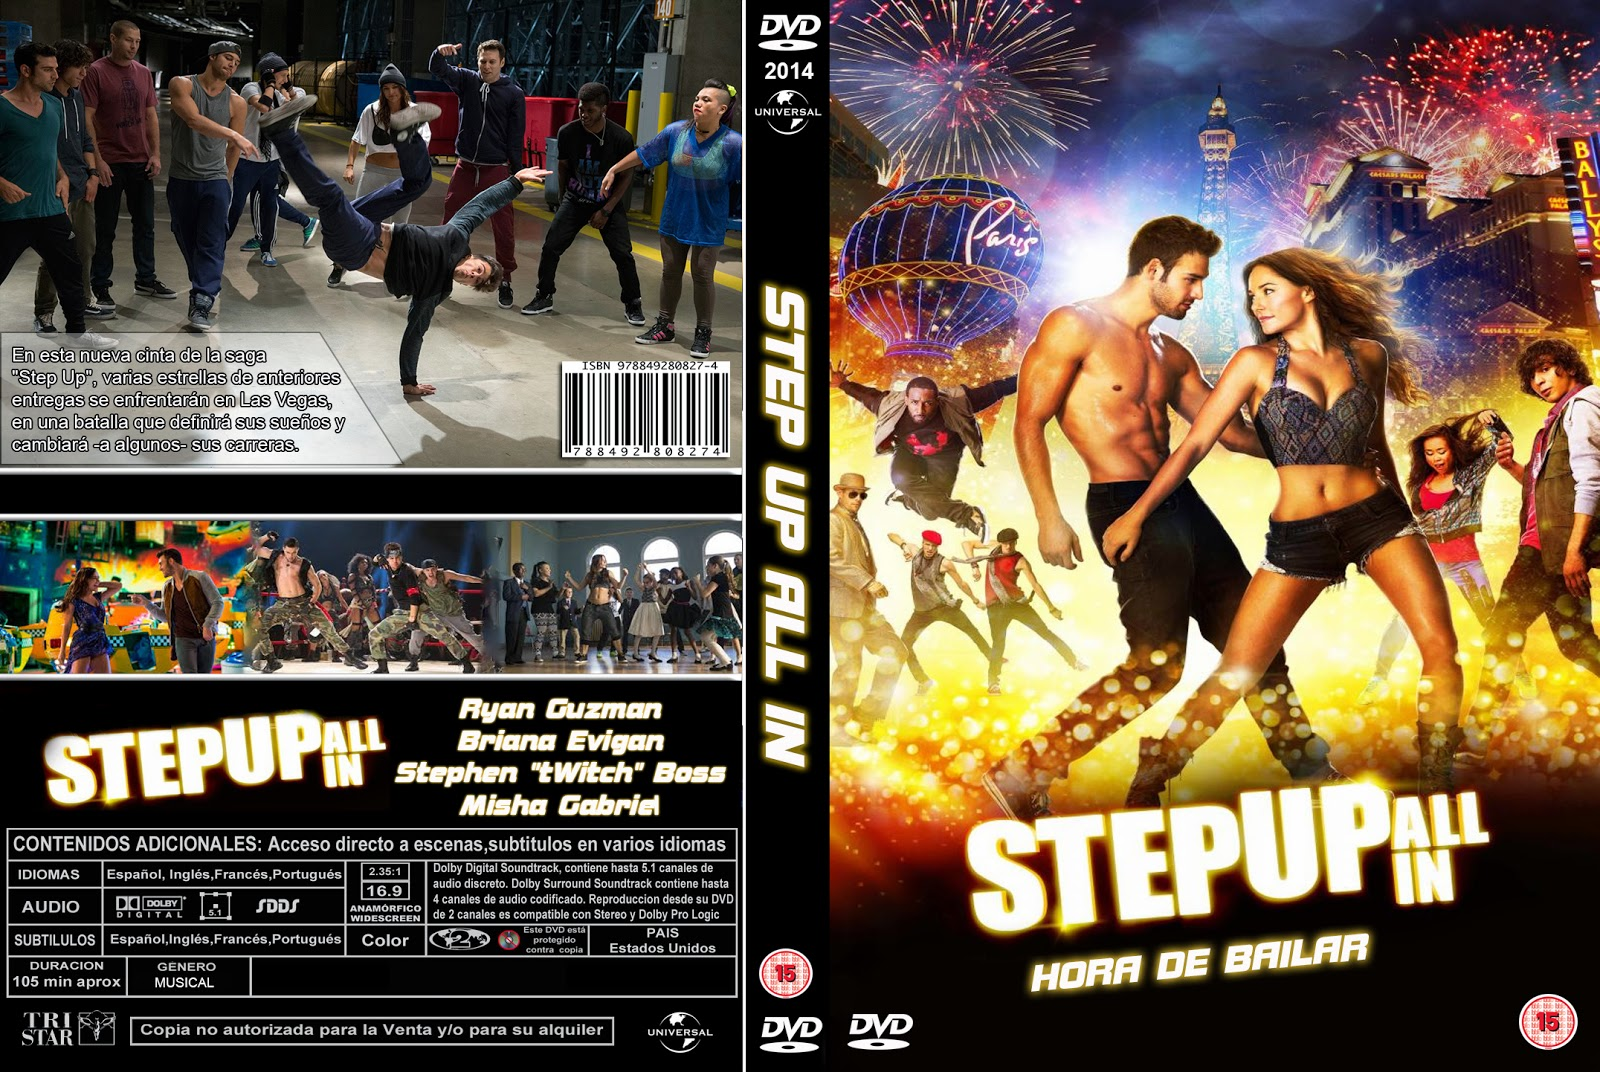 PB | DVD Cover / Caratula FREE: STEP UP ALL IN - DVD COVER ...